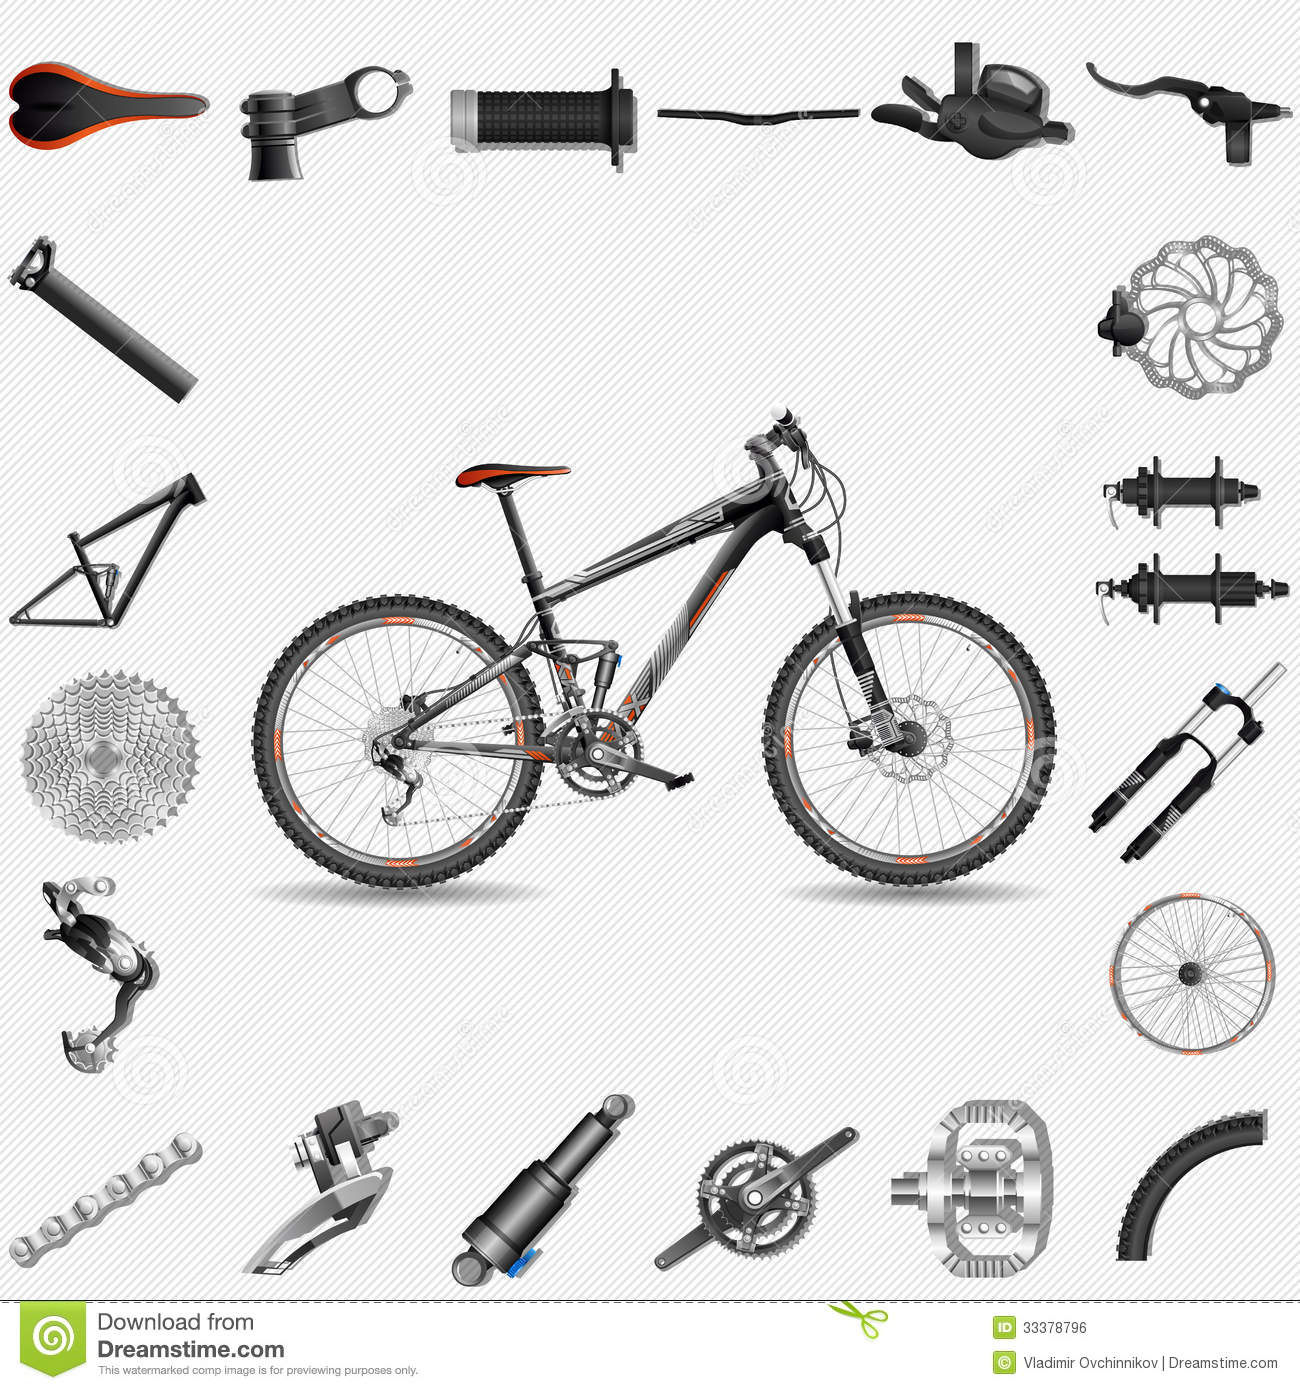 Specialized Bicycle Components Cars News Videos Images Websites